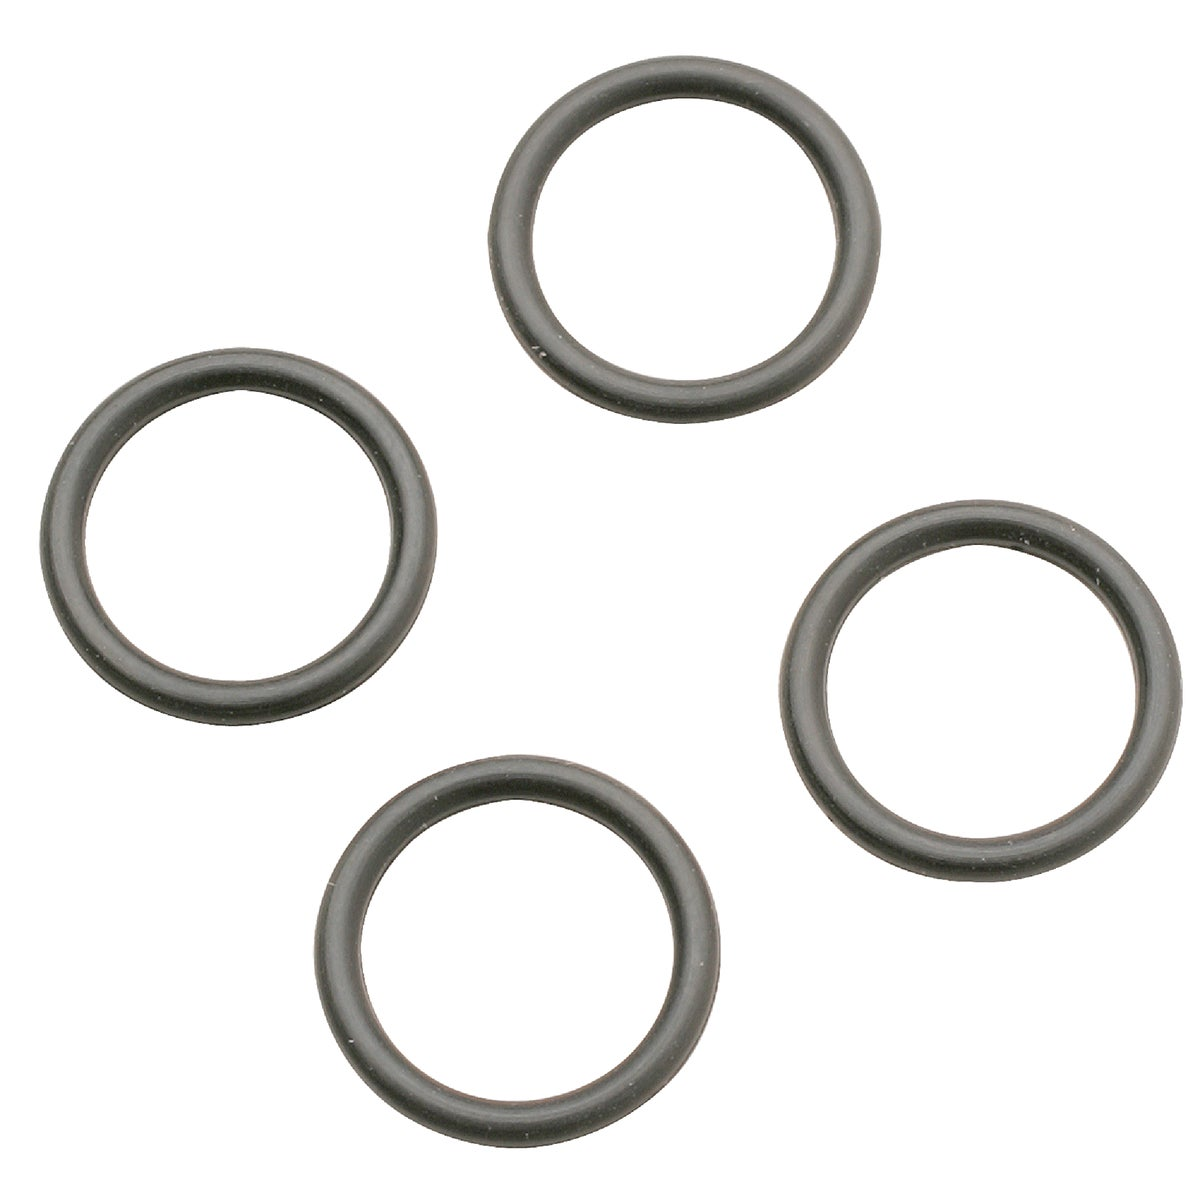 "3/8""ID O-RINGS - 402362 by Plumb Pak/keeney Mfg"